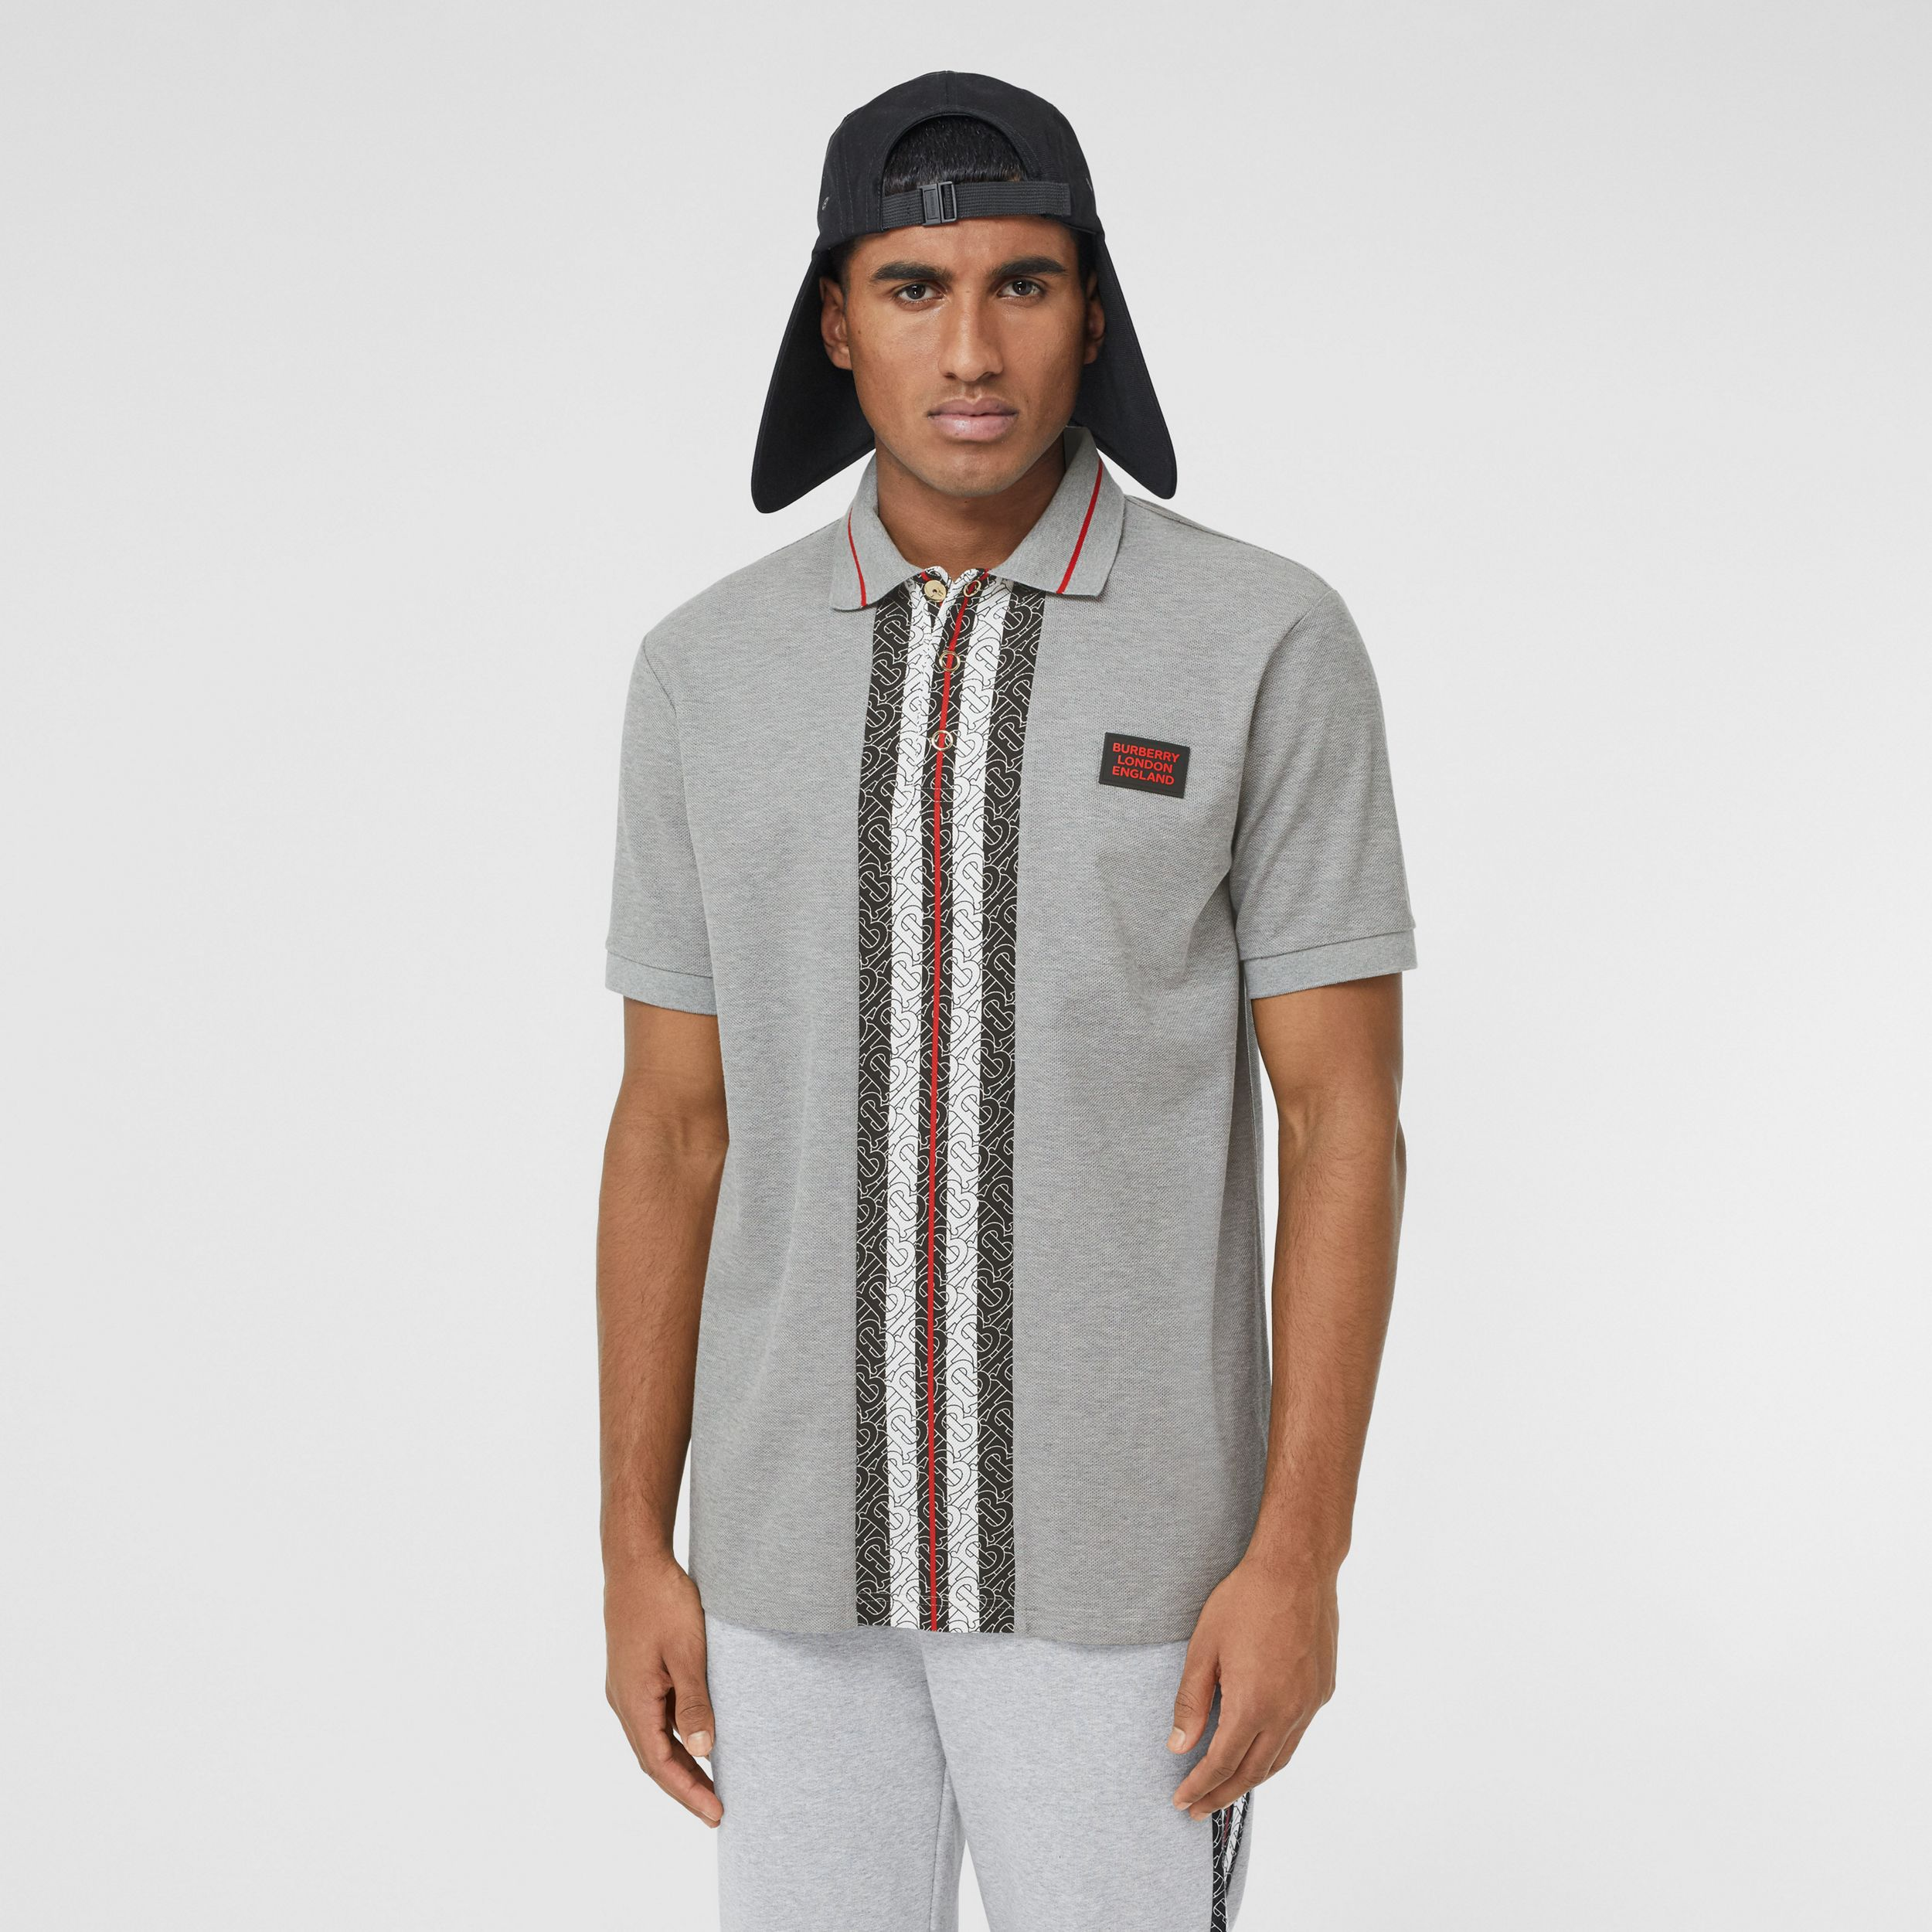 Monogram Stripe Print Cotton Piqué Polo Shirt in Pale Grey Melange - Men | Burberry - 1